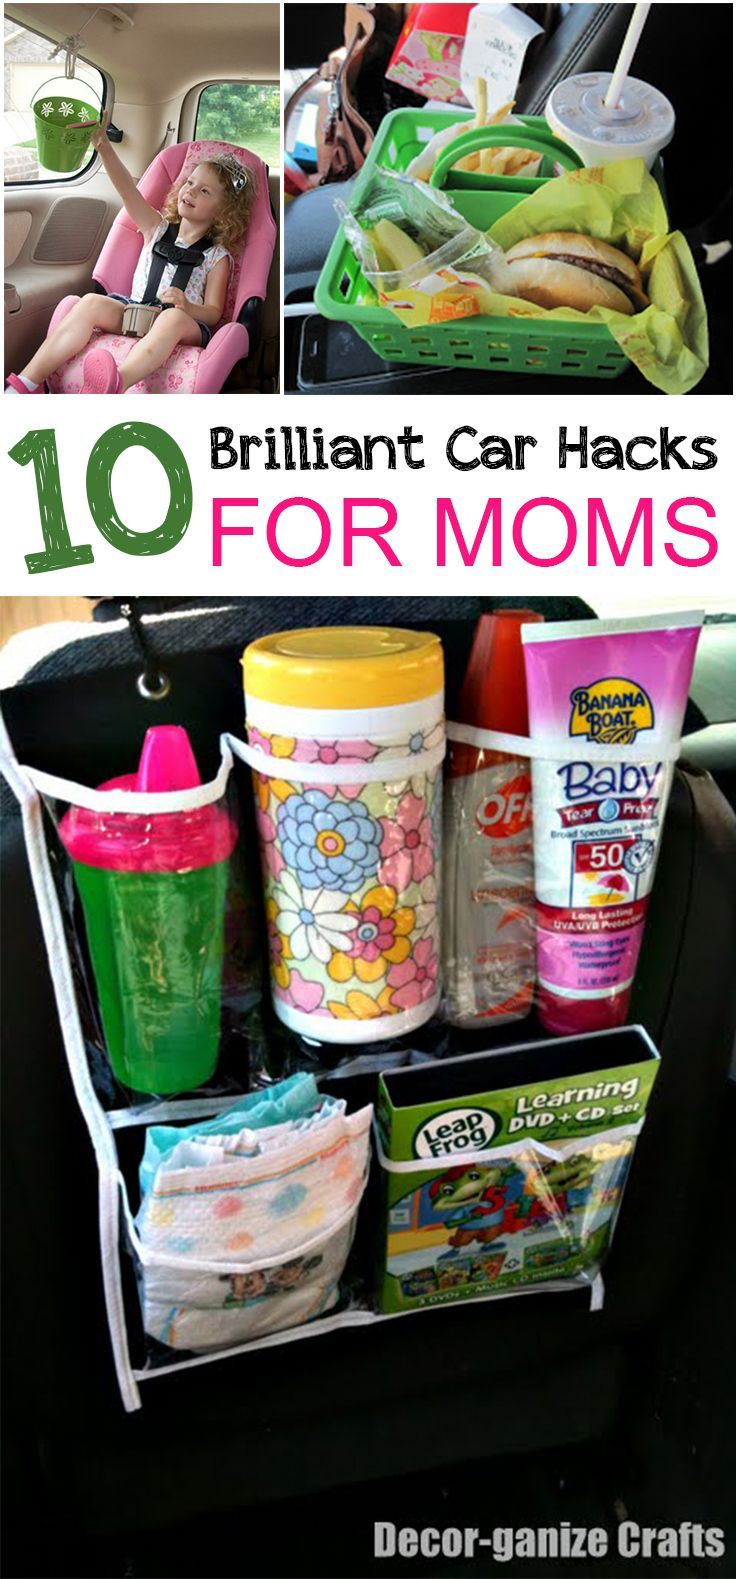 10 Brilliant Car Hacks for Moms- Great ideas to make the car ride easier for moms:): #carhacks #tips #travel